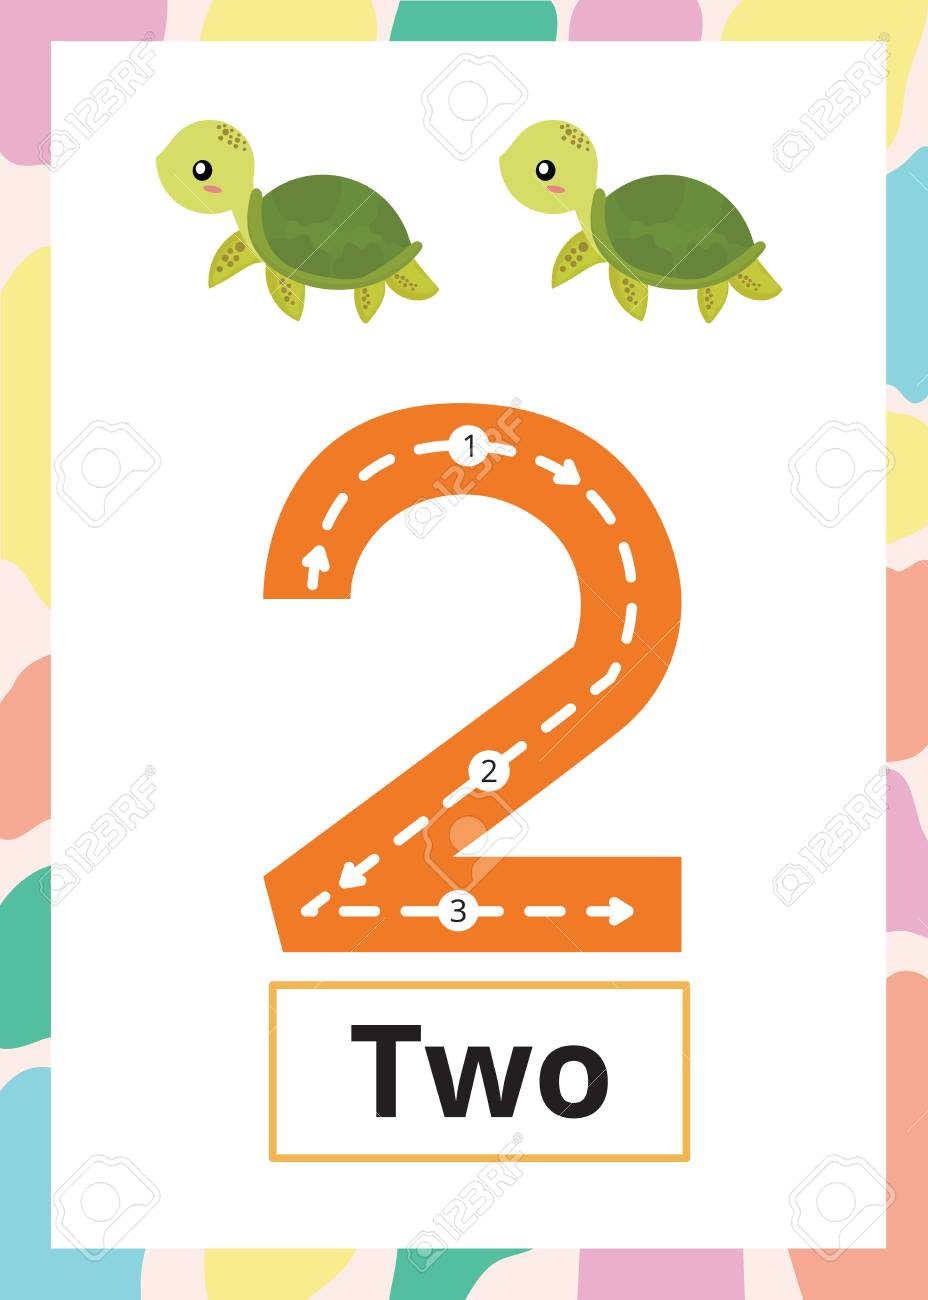 Number Tracing Worksheet number 2 with turtle. - 108457306